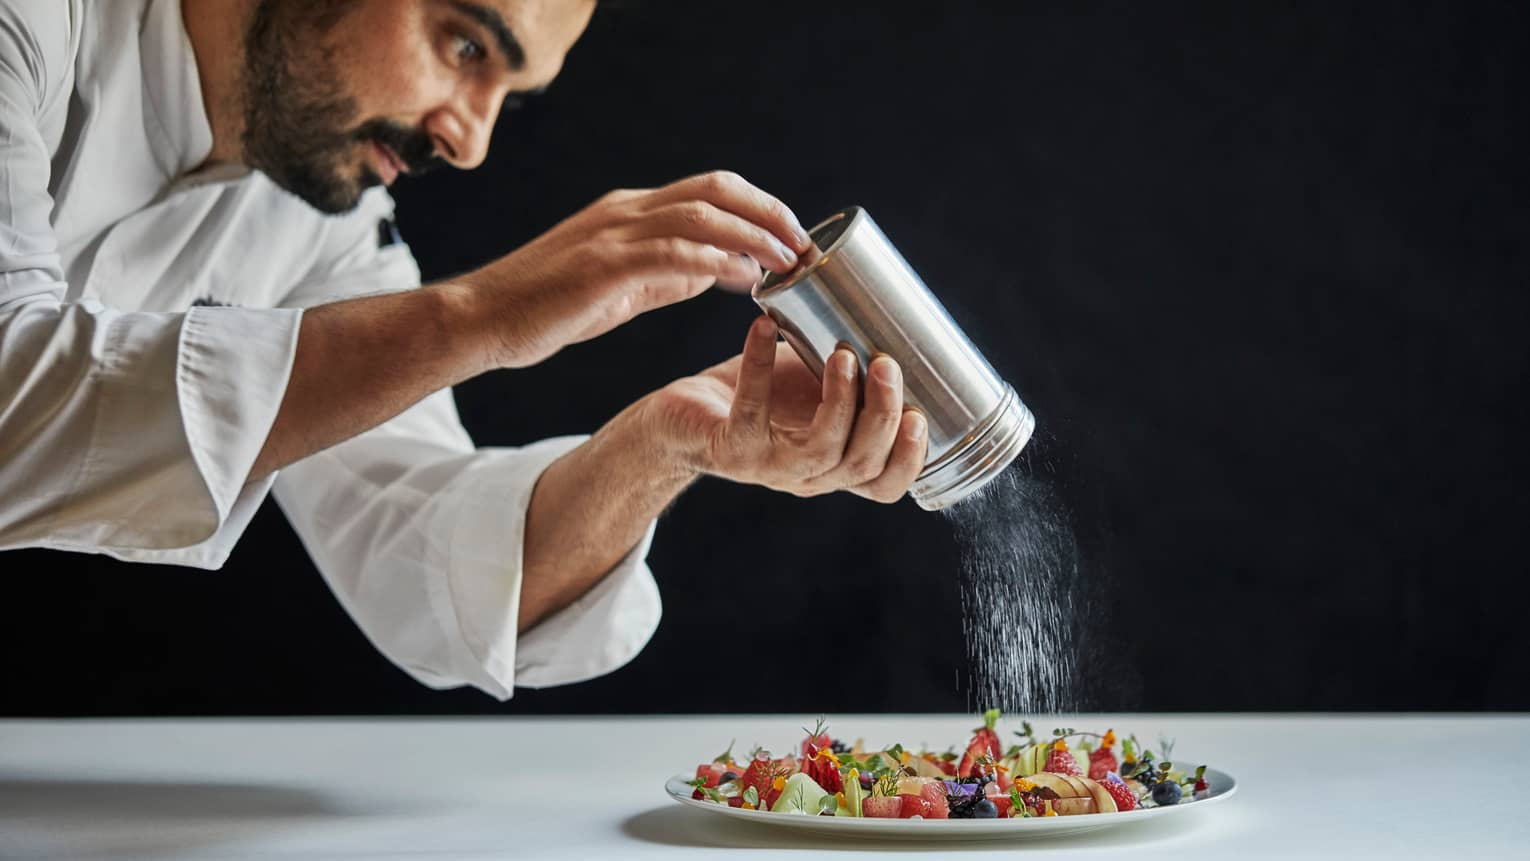 Executive Chef Antonio Mermolia shakes powdered sugar over plate of dessert